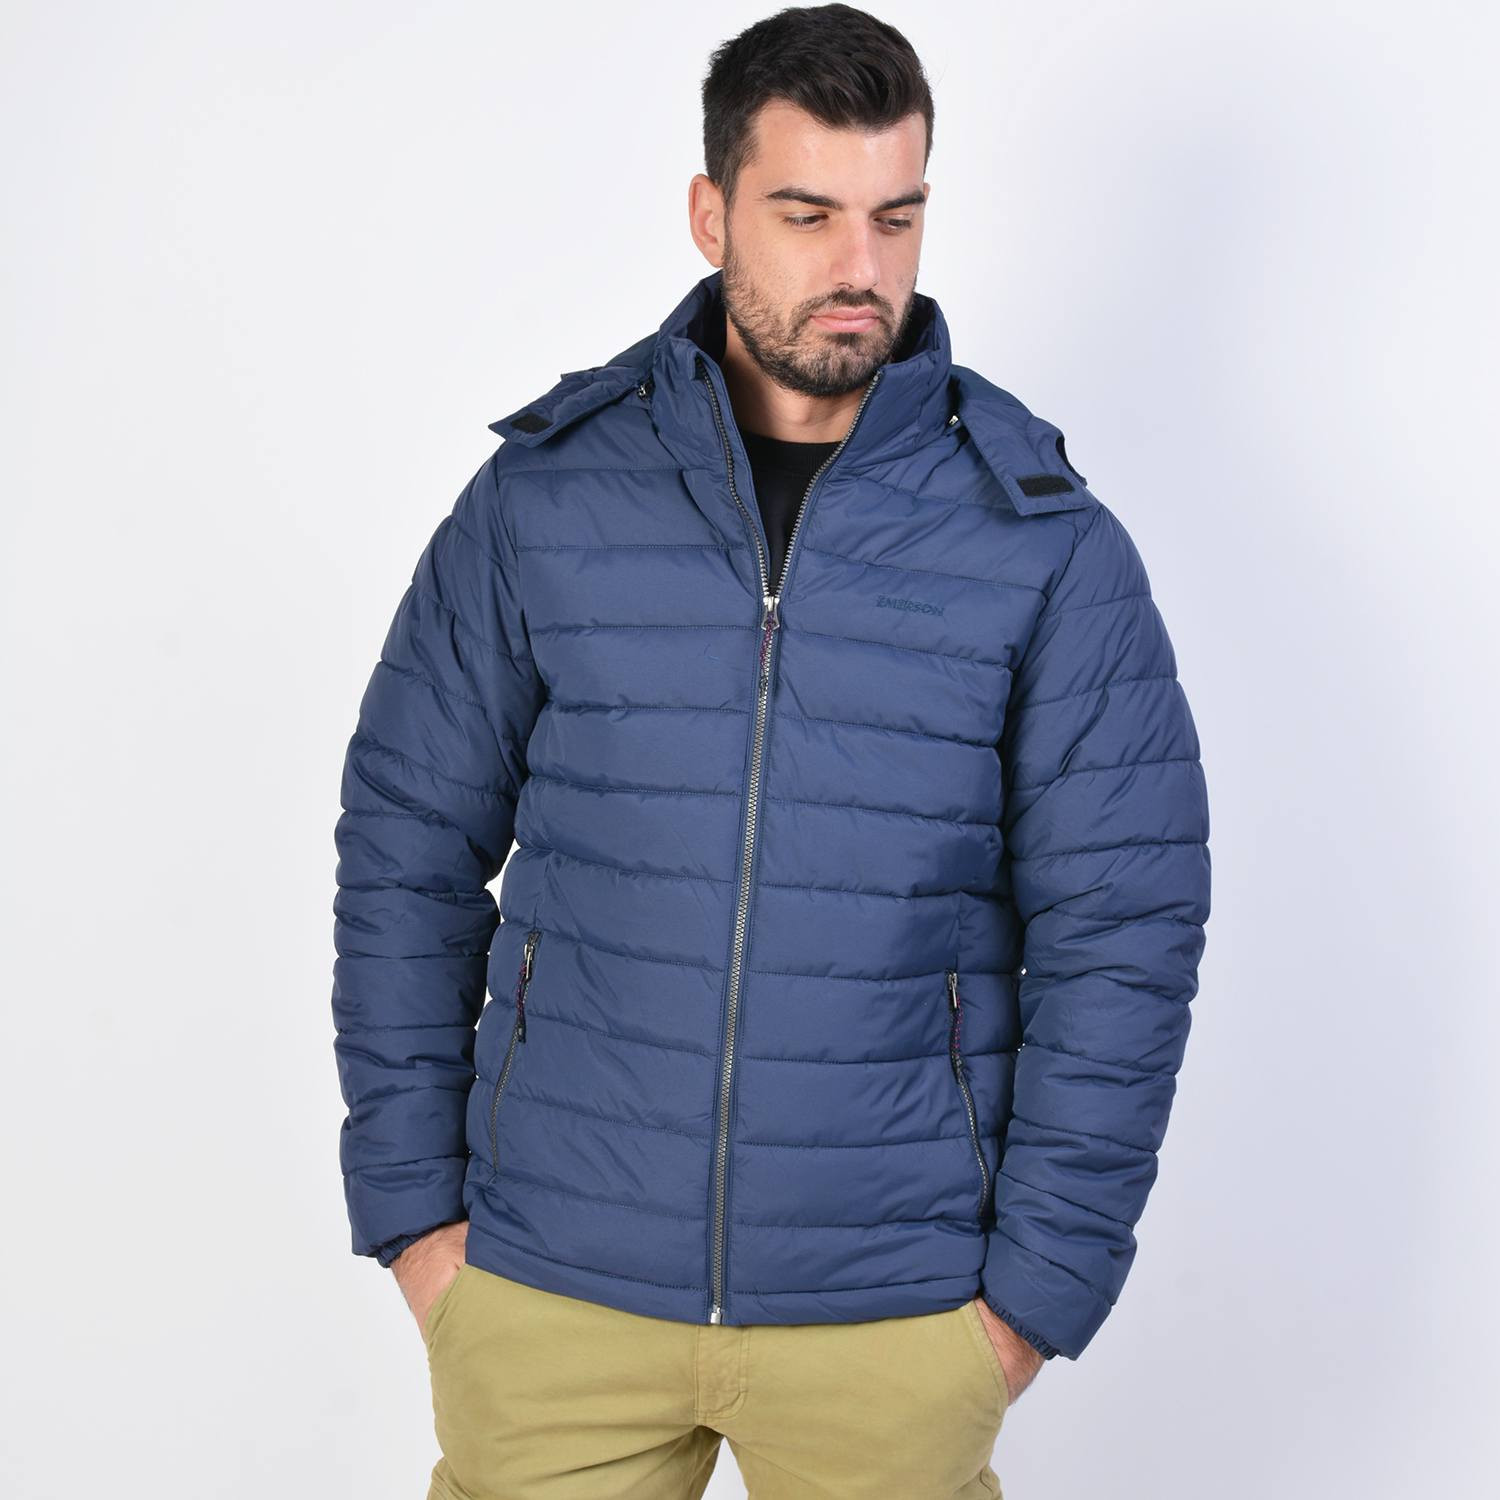 Emerson Men's P.p.down Jacket With Hood (9000036088_40977)